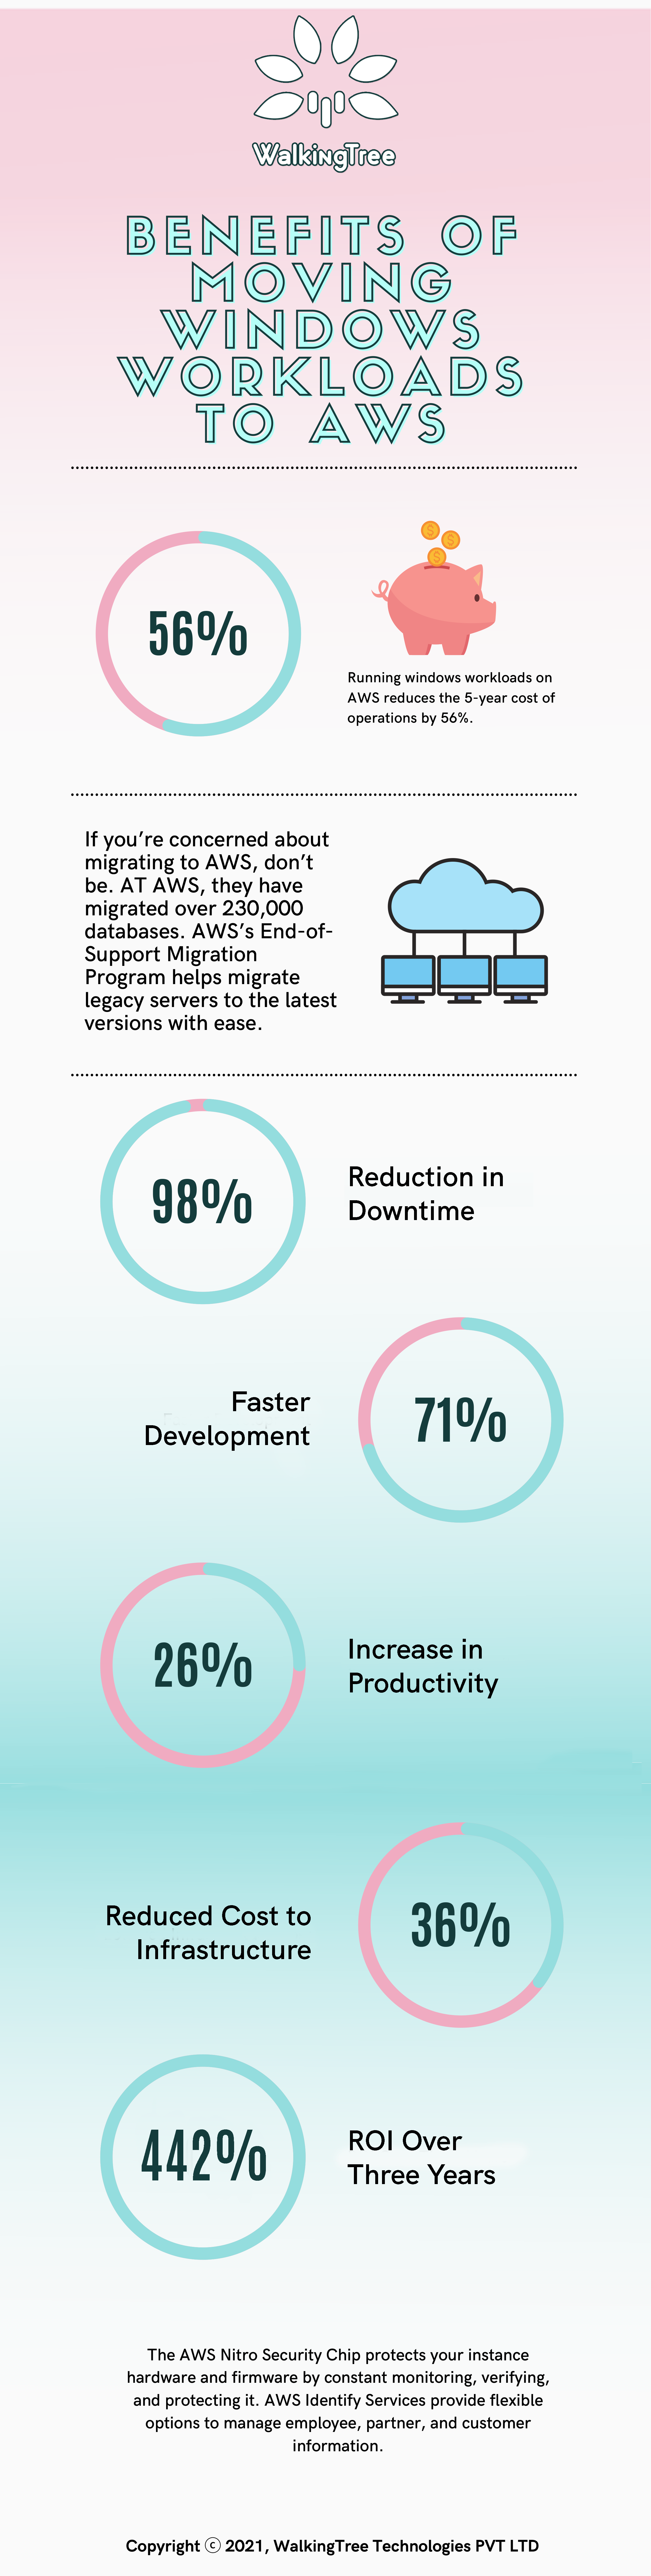 Benefits of Moving Windows Workloads to AWS-3